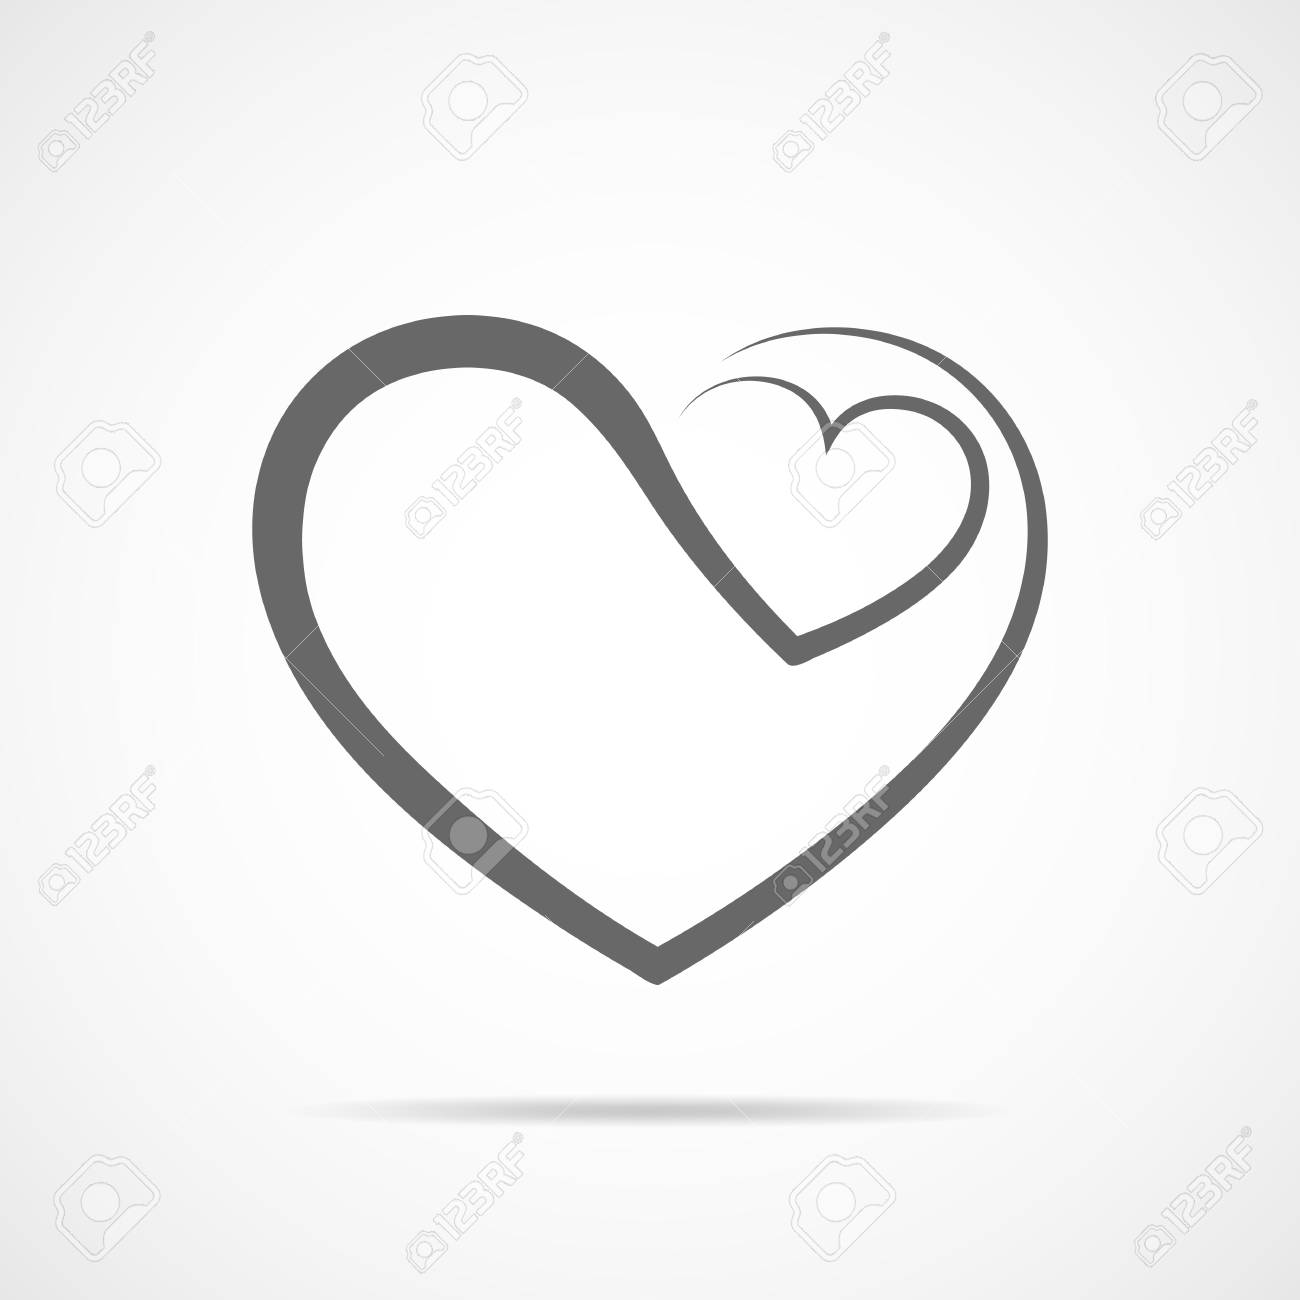 abstract heart shape outline vector illustration gray heart rh 123rf com heart outline vector png heart outline vector eps